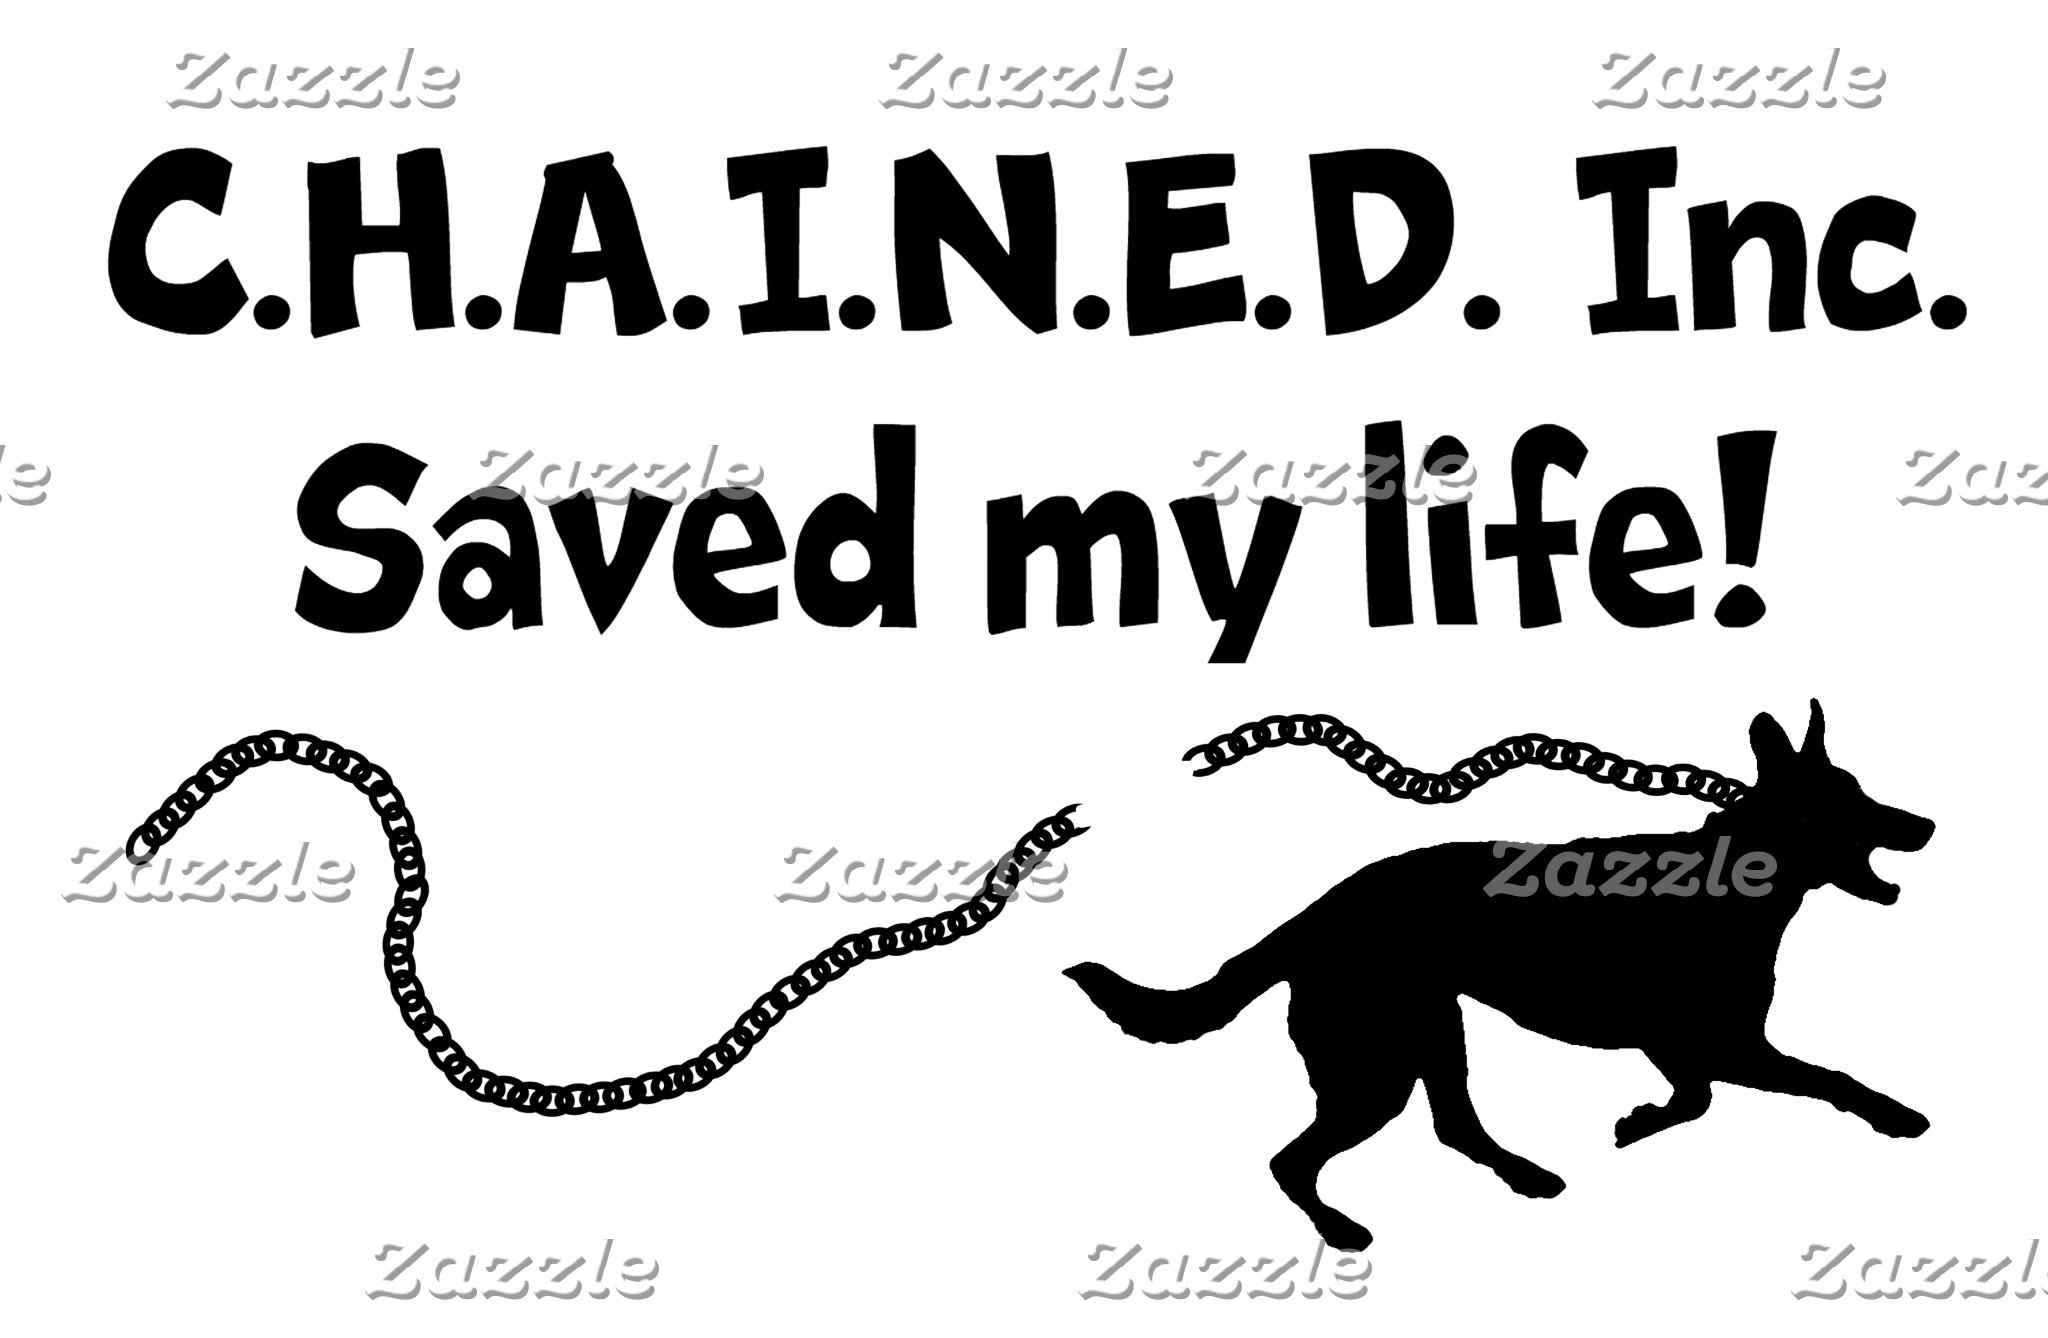 Special for C.H.A.I.N.E.D. Inc. Rescues & Family!